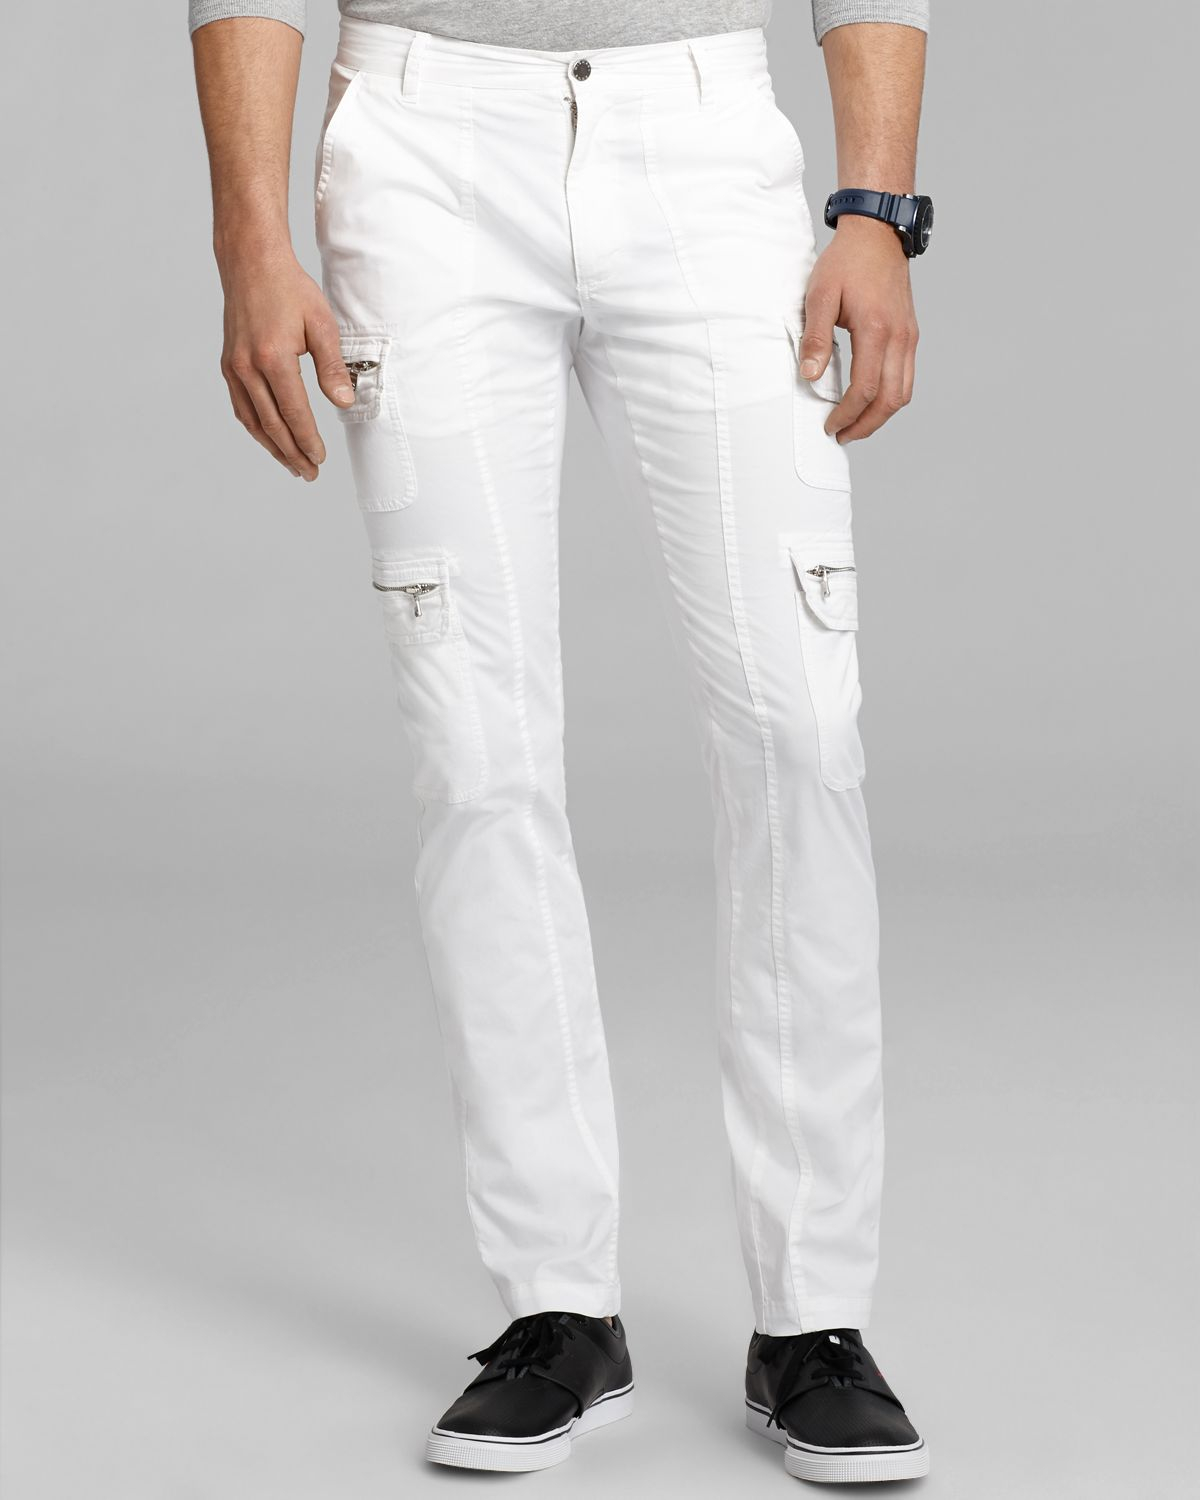 Michael kors Twill Cargo Pants in White for Men | Lyst